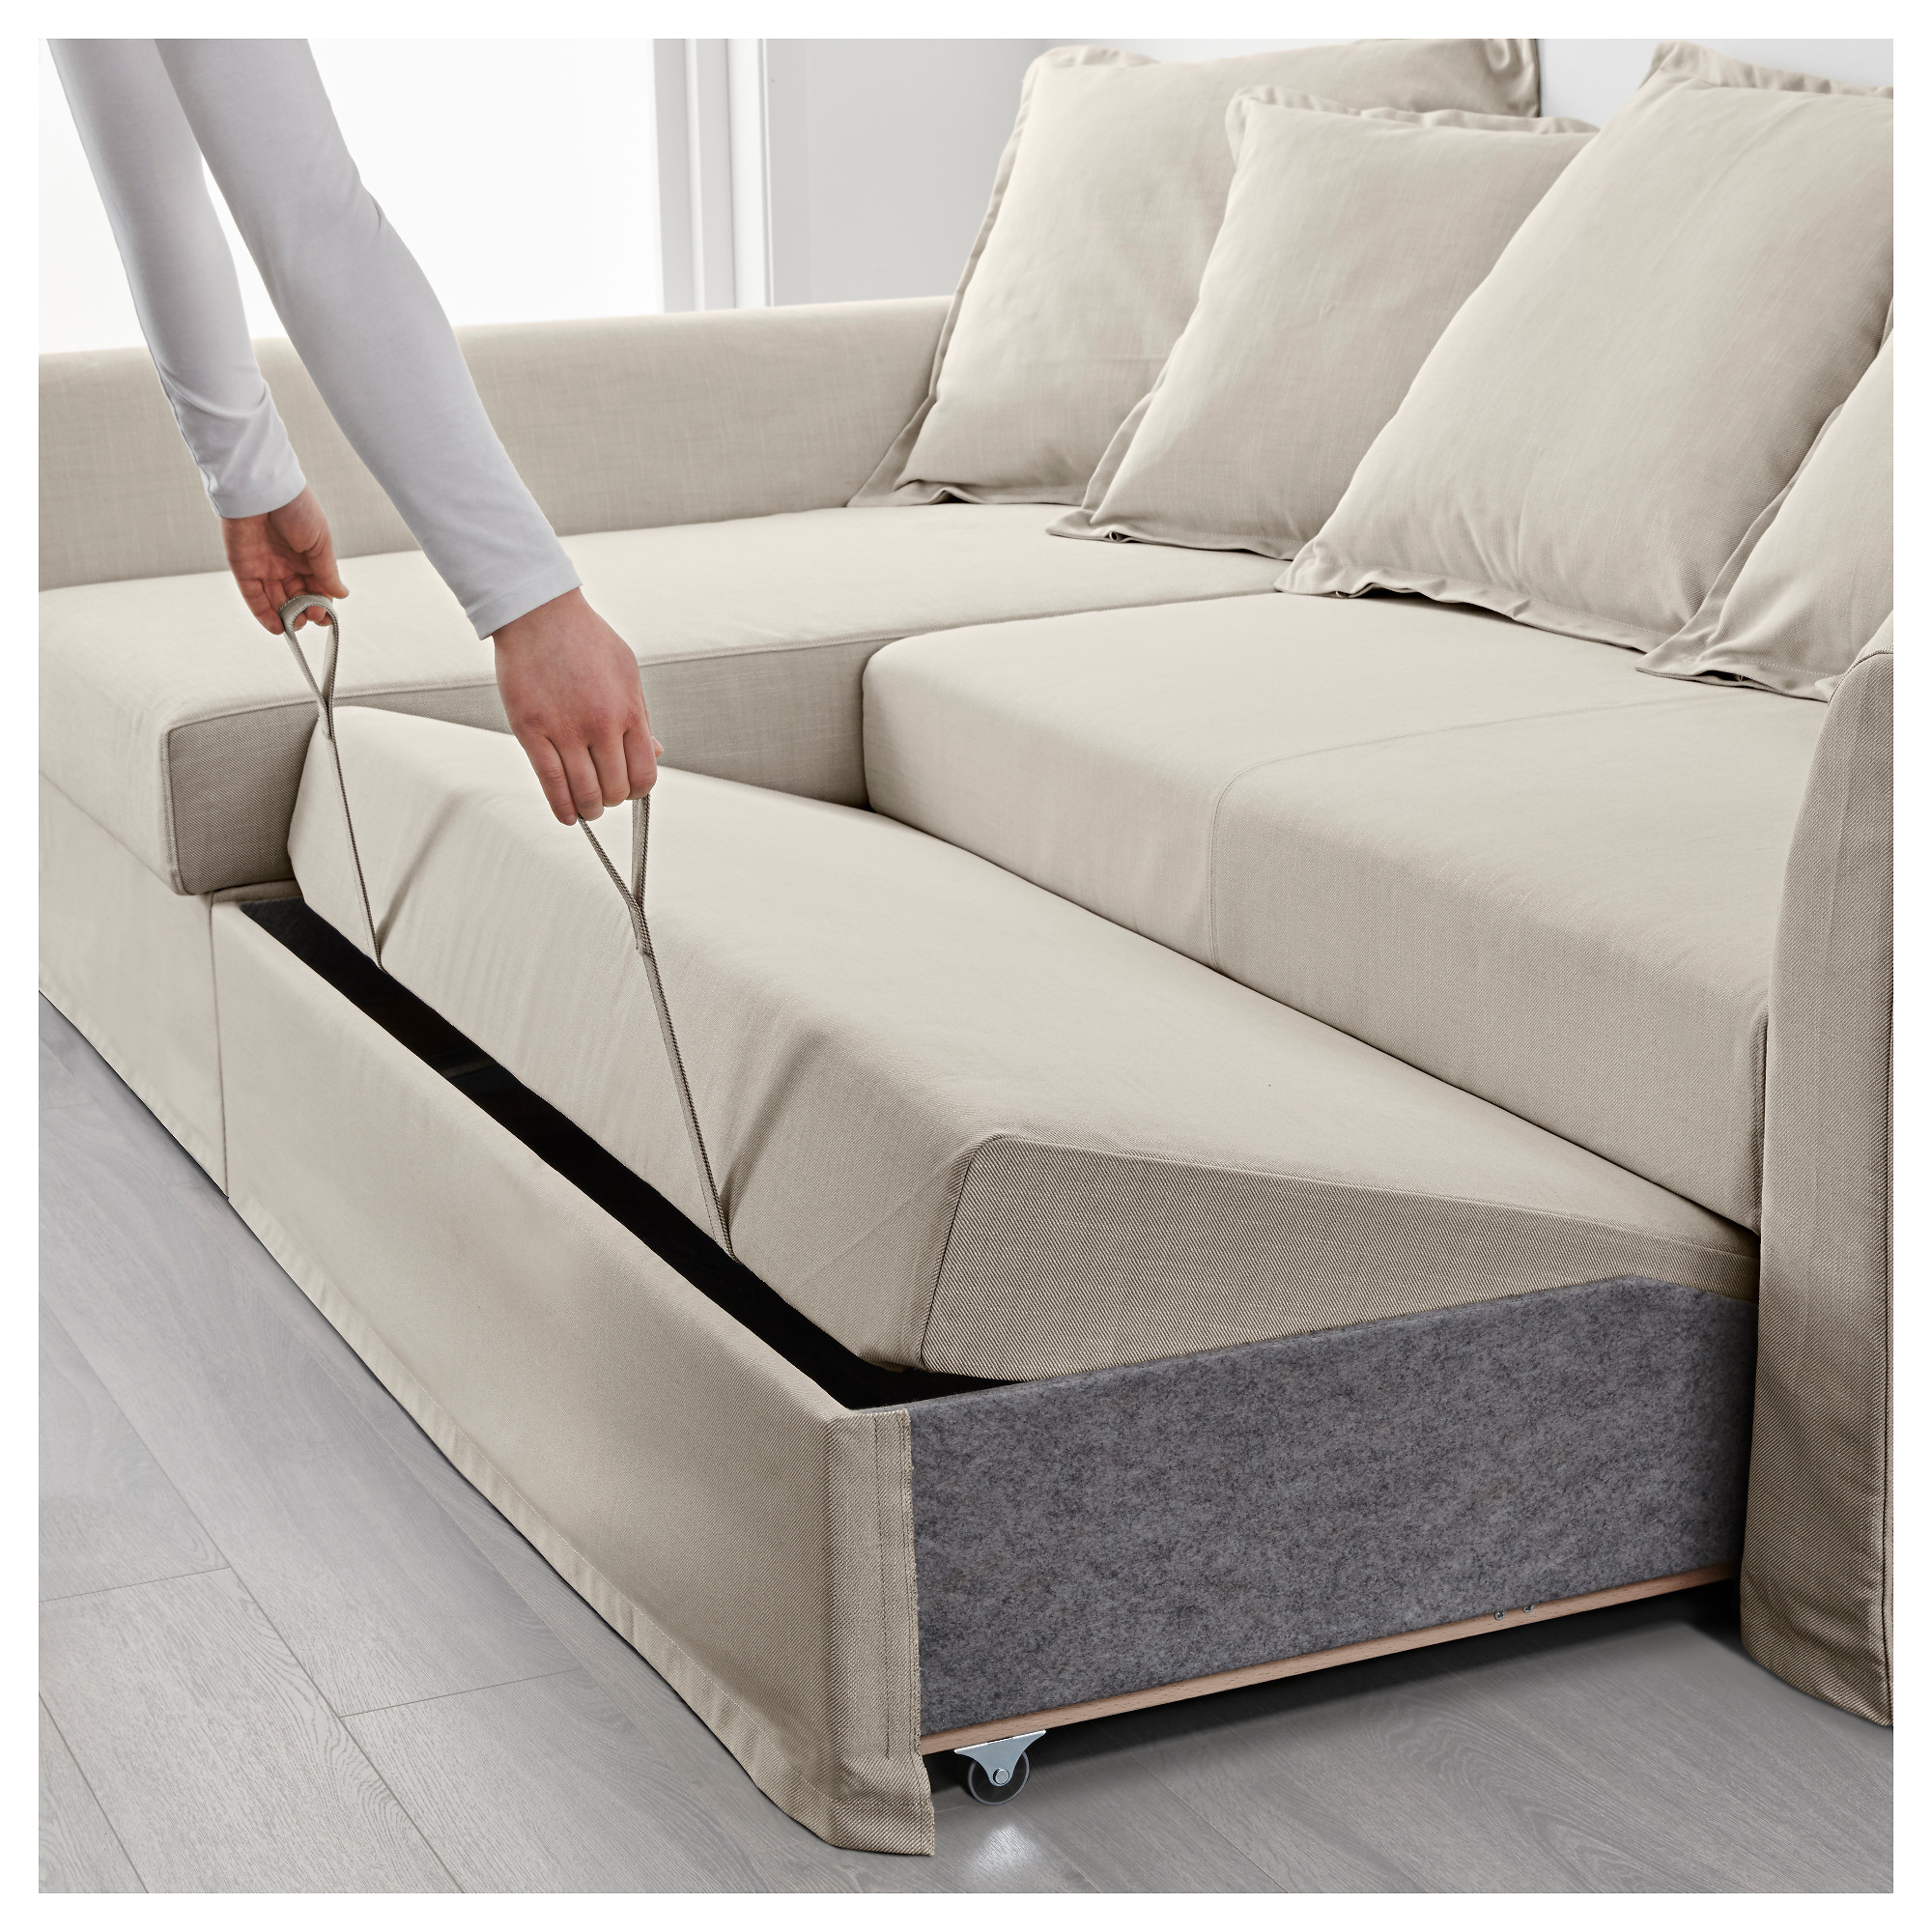 vilasund longue backabro with review and clones of sofa ikea return the bed chaise